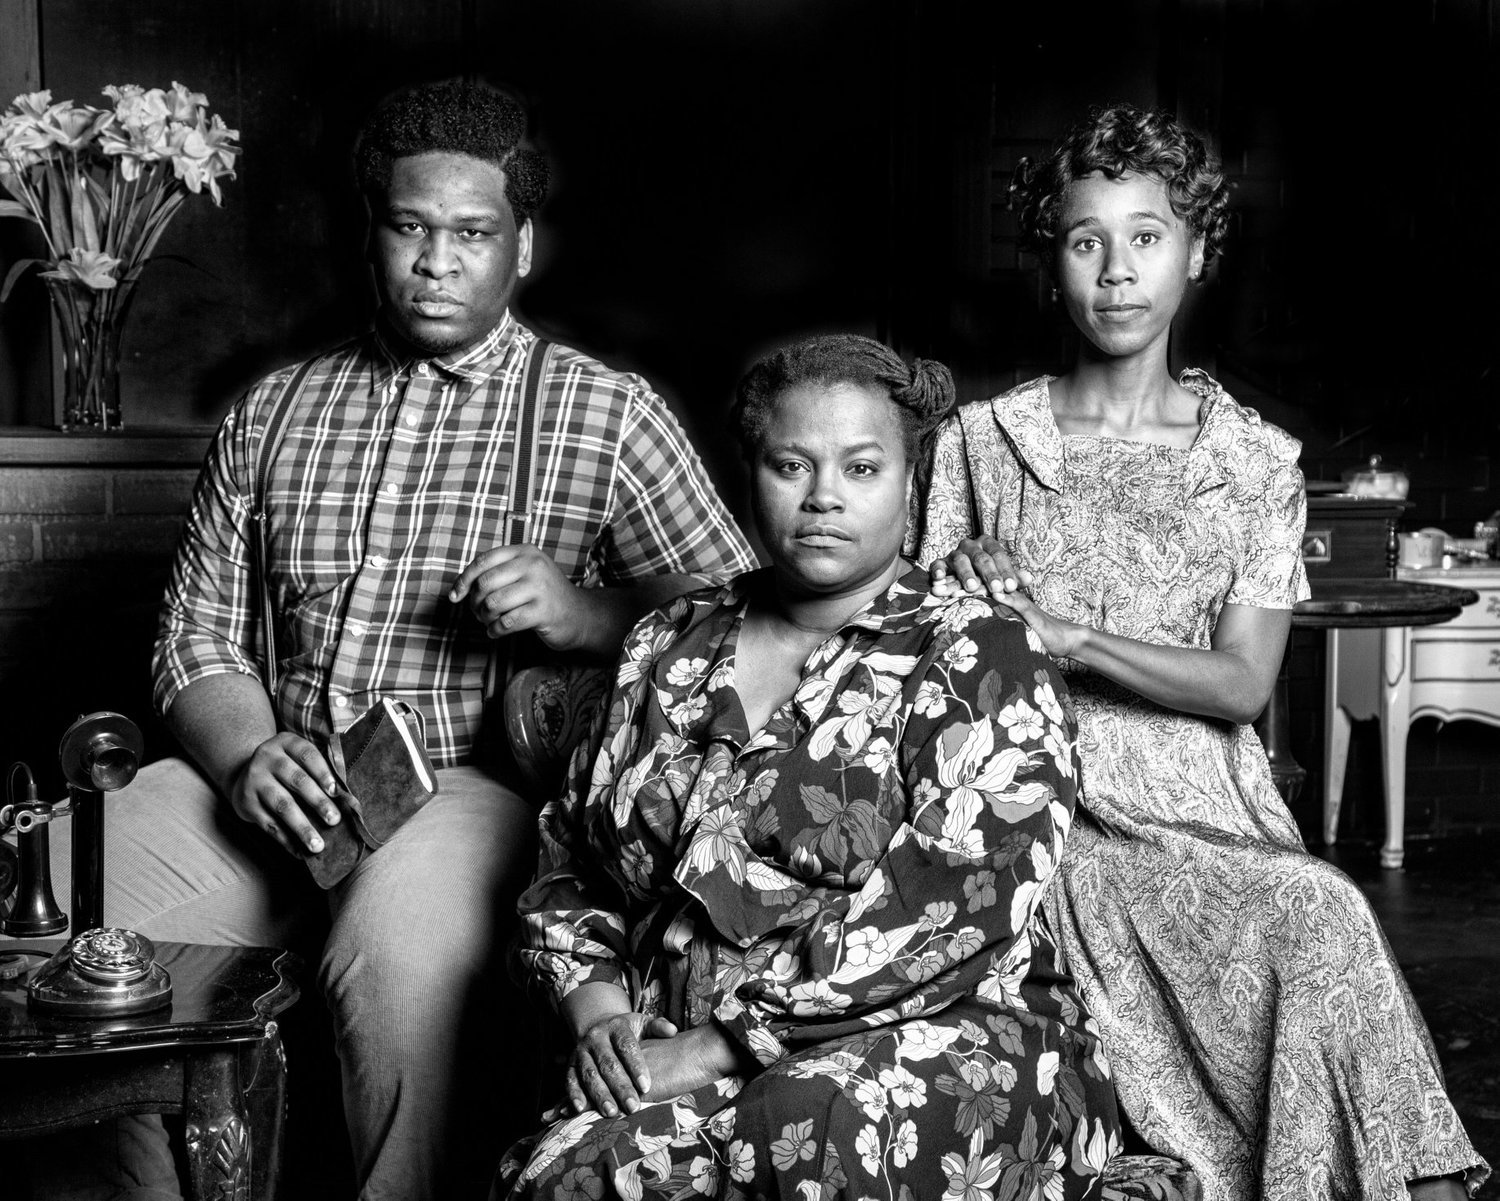 BWW Review: THE GLASS MENAGERIE Glistens at The Firehouse Theatre